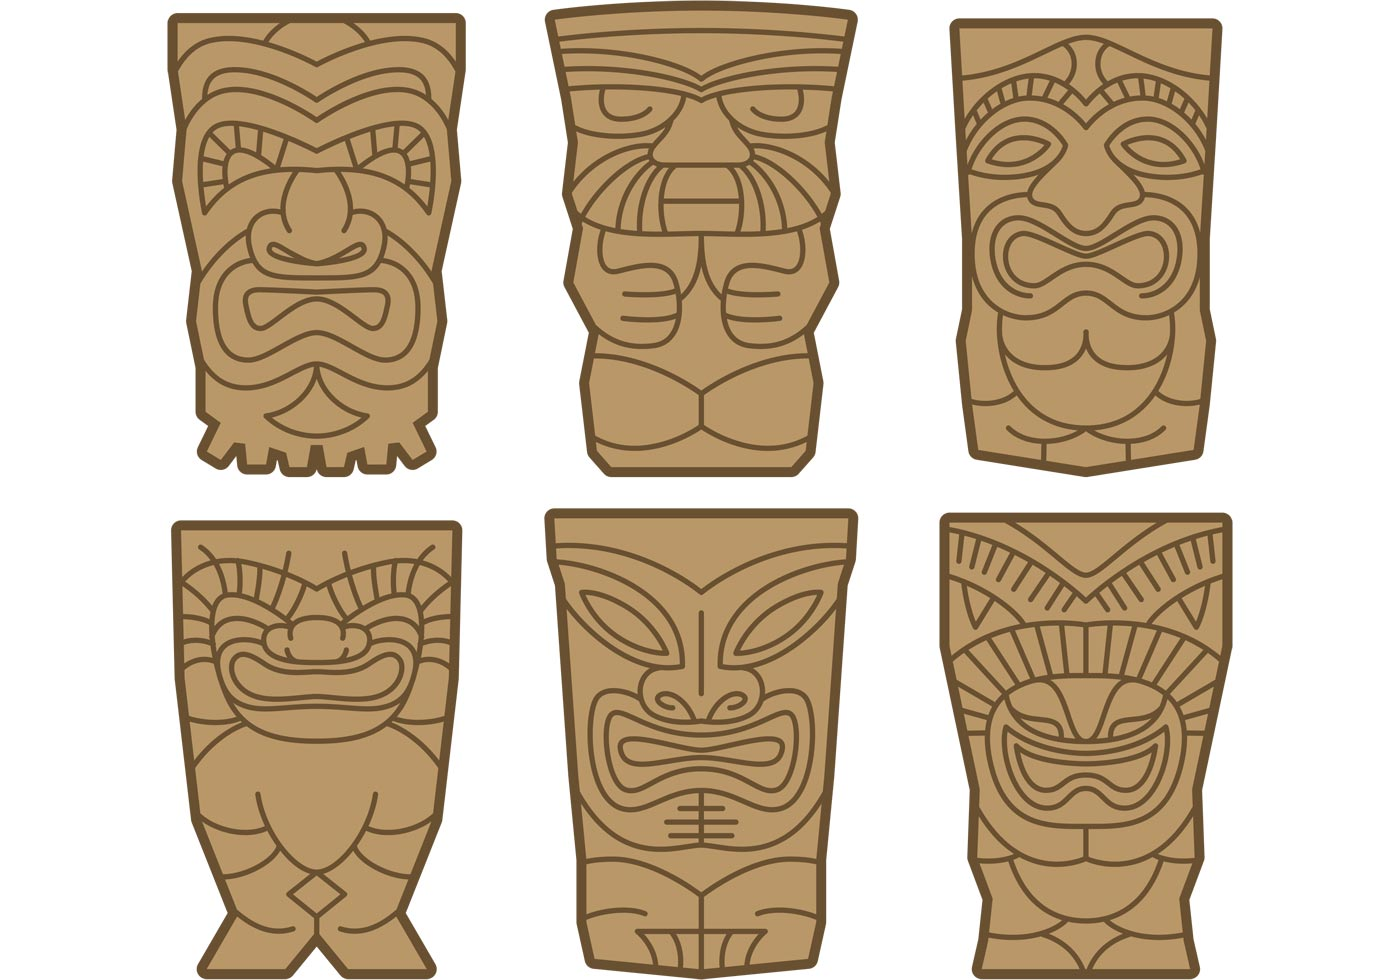 Tiki Totems Vectors - Download Free Vector Art, Stock Graphics ...: http://www.vecteezy.com/vector-art/83487-tiki-totems-vectors